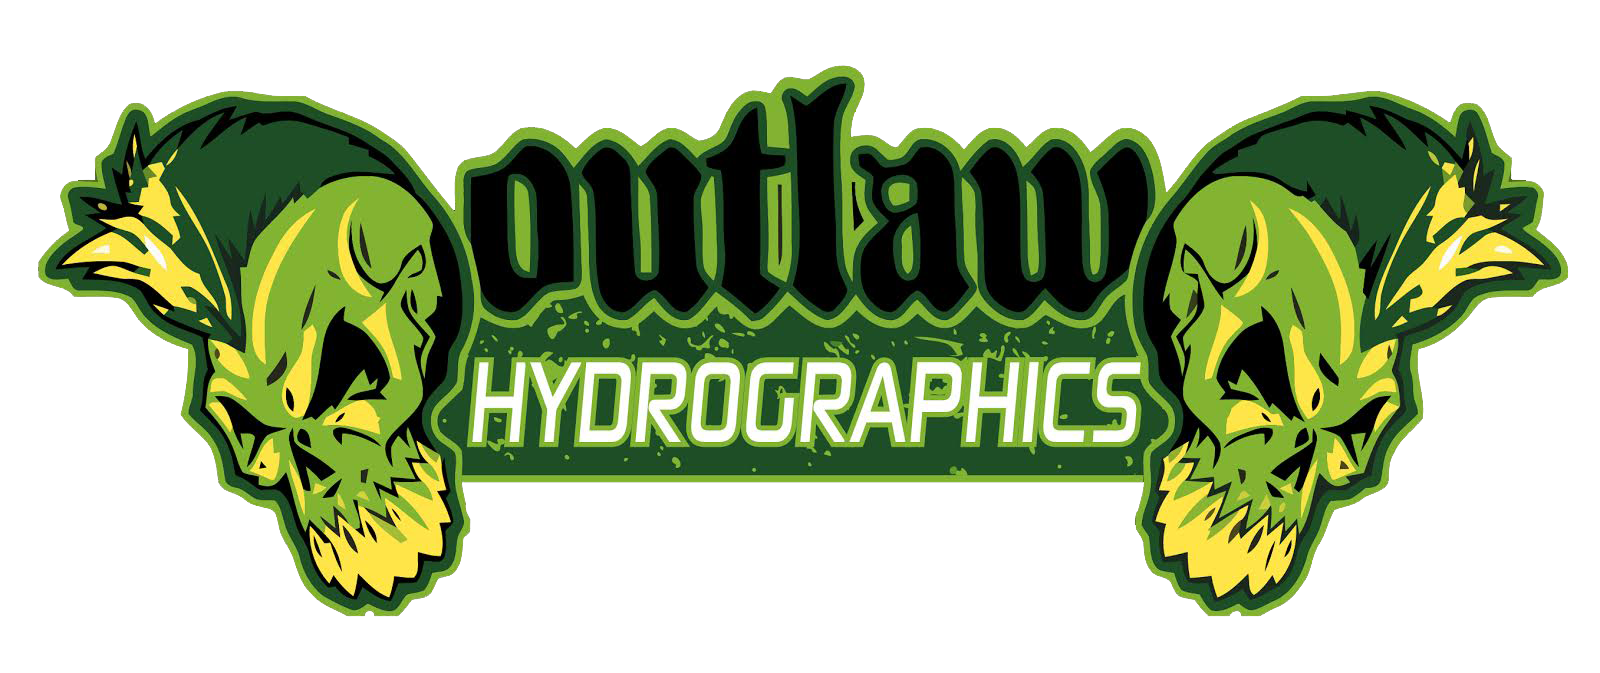 Outlaw Hydrographics , 148 ELK DRIVE UNIT 2, MURRELLS INLET, SC, 29588, USA